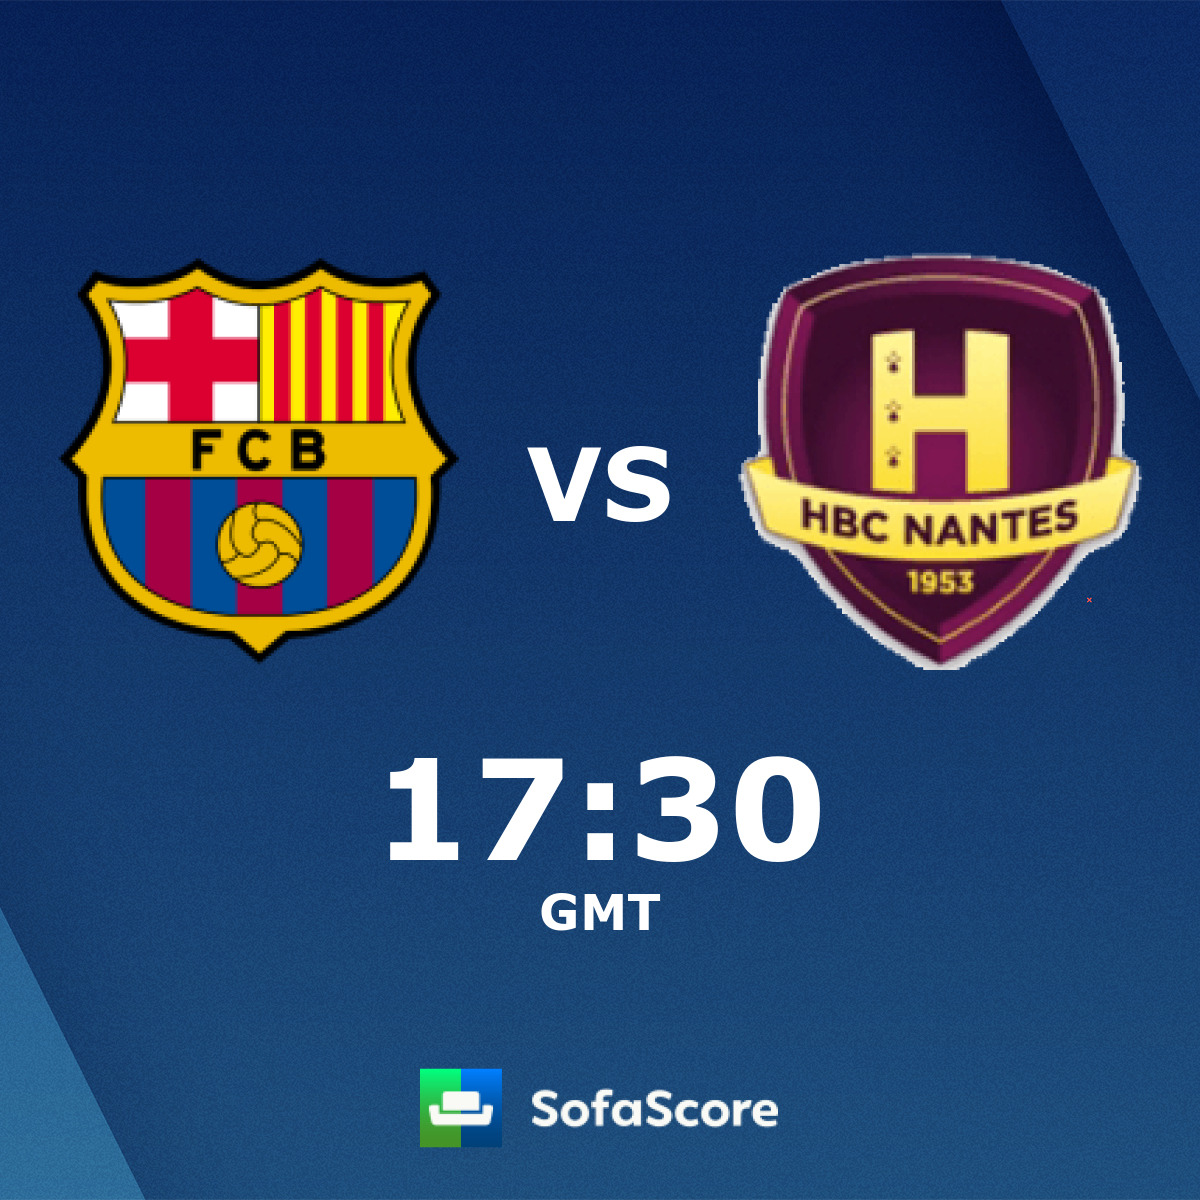 FC Barcelona HB HBC Nantes live score, video stream and H2H